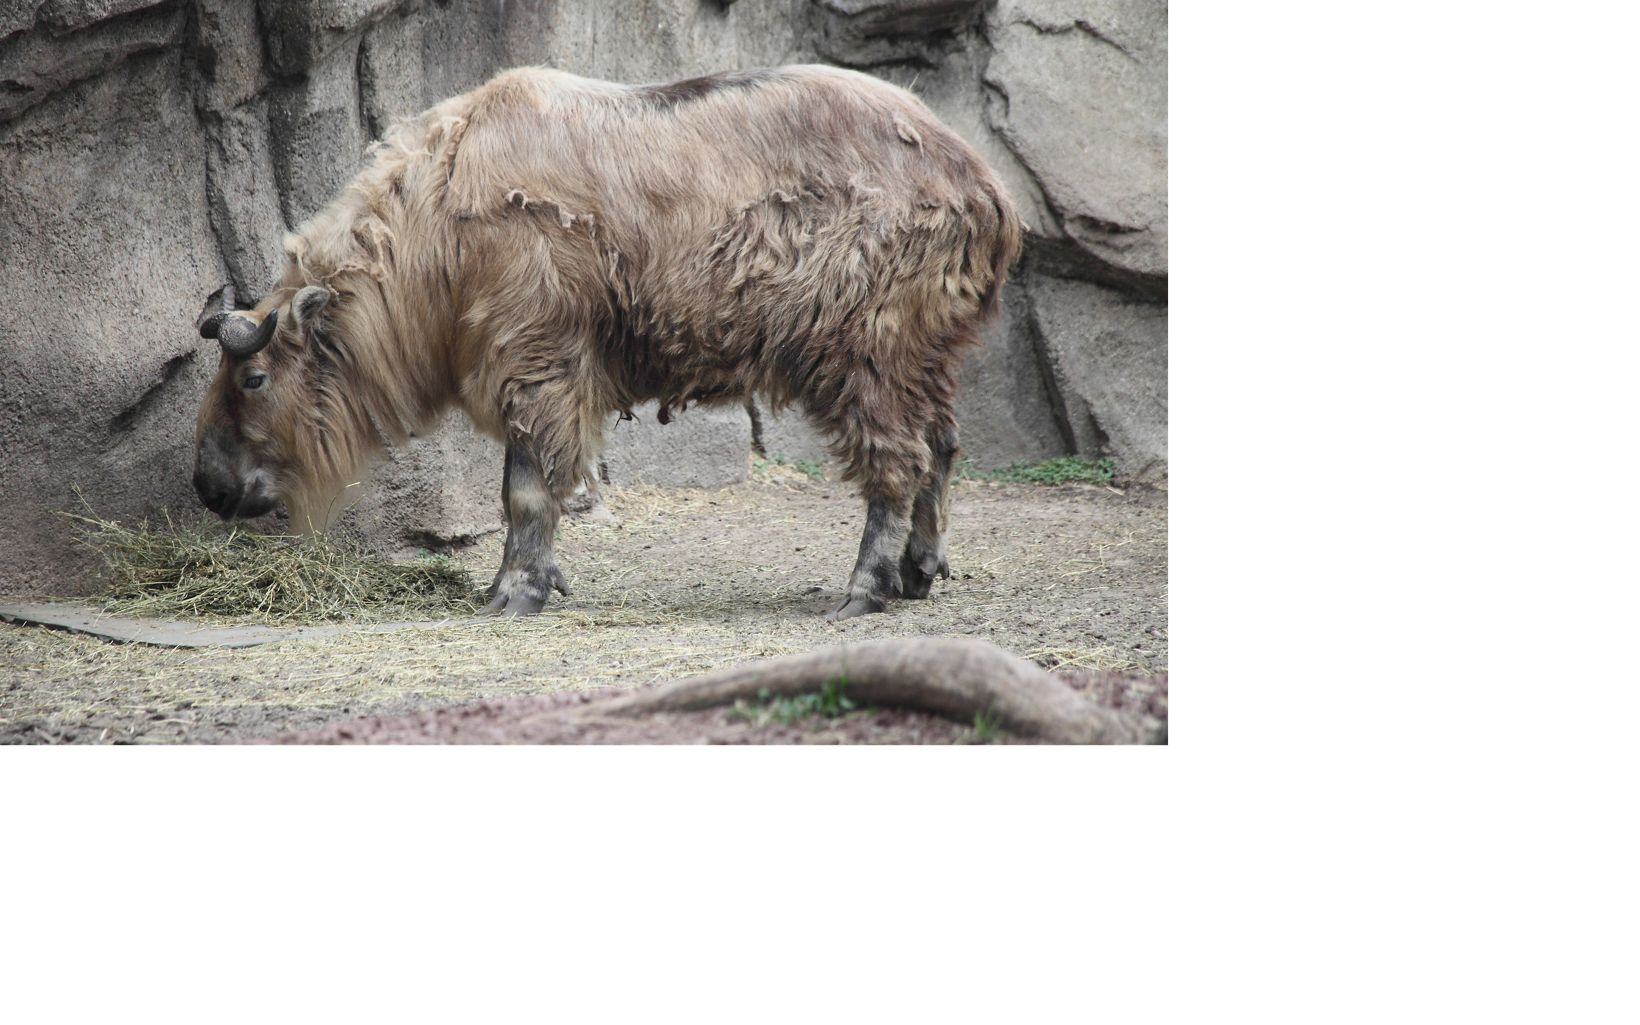 side view of a takin with messy beige fur